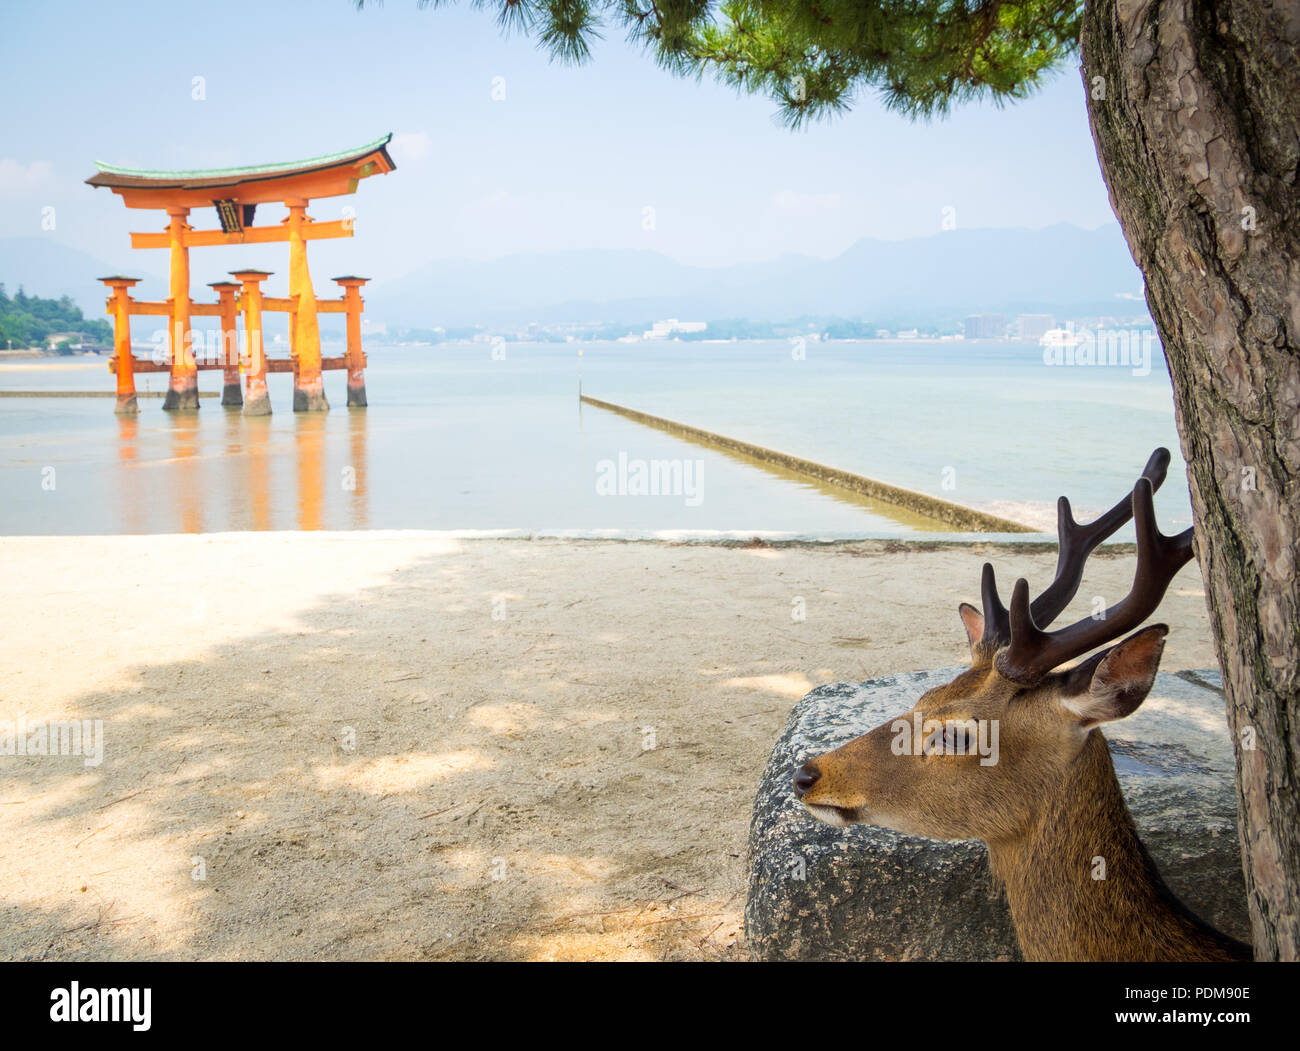 A male sika deer (Cervus nippon) in front of the floating torii gate at Itsukushima Shrine on the island of Miyajima, Hiroshima Prefecture, Japan. - Stock Image